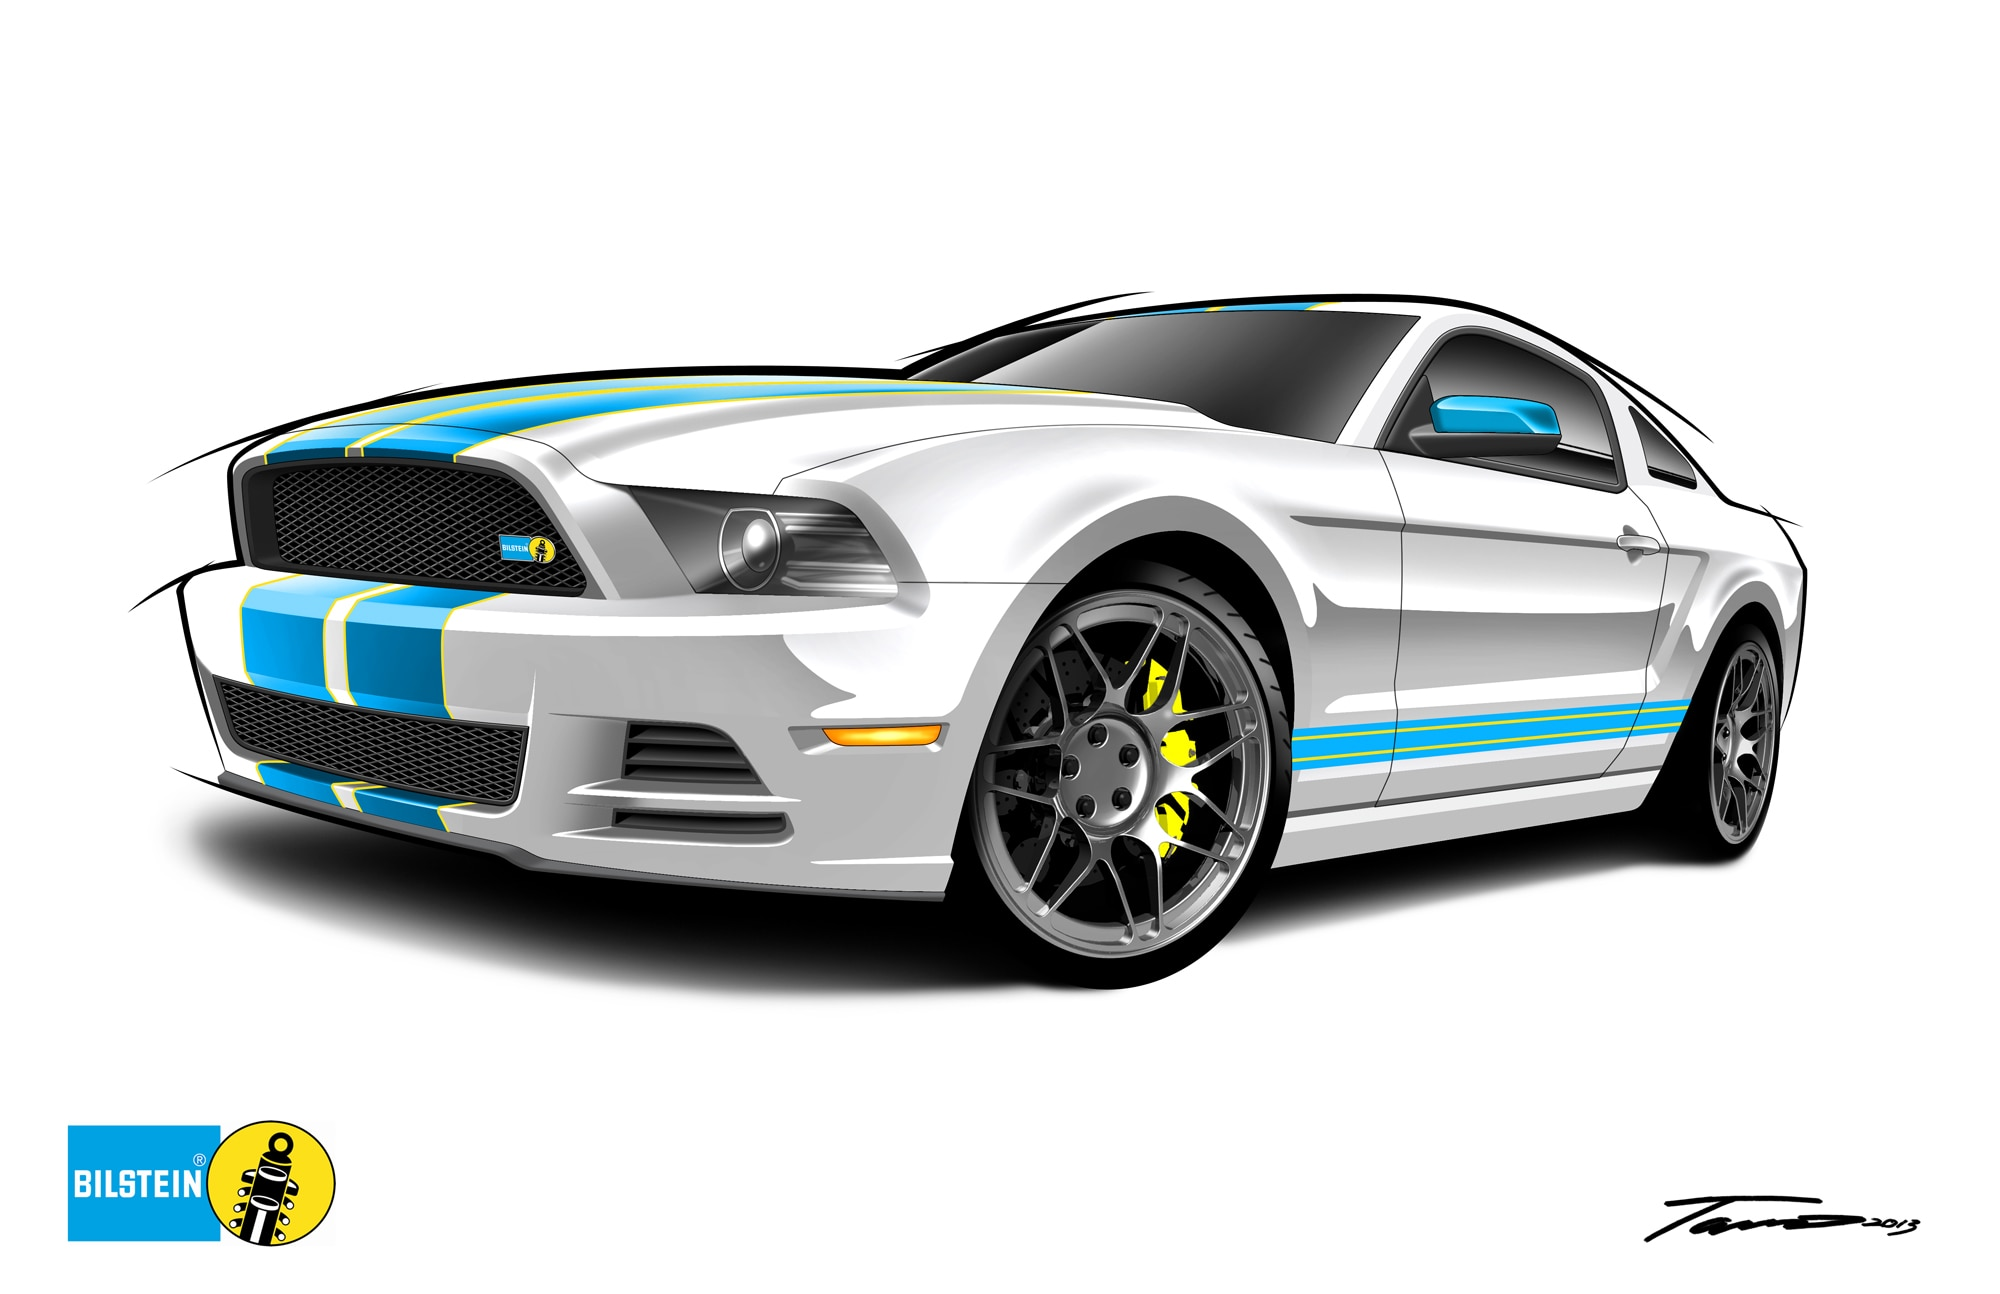 052213tr+ford mustang gt 5 0 bilstein+just add sweepstakes